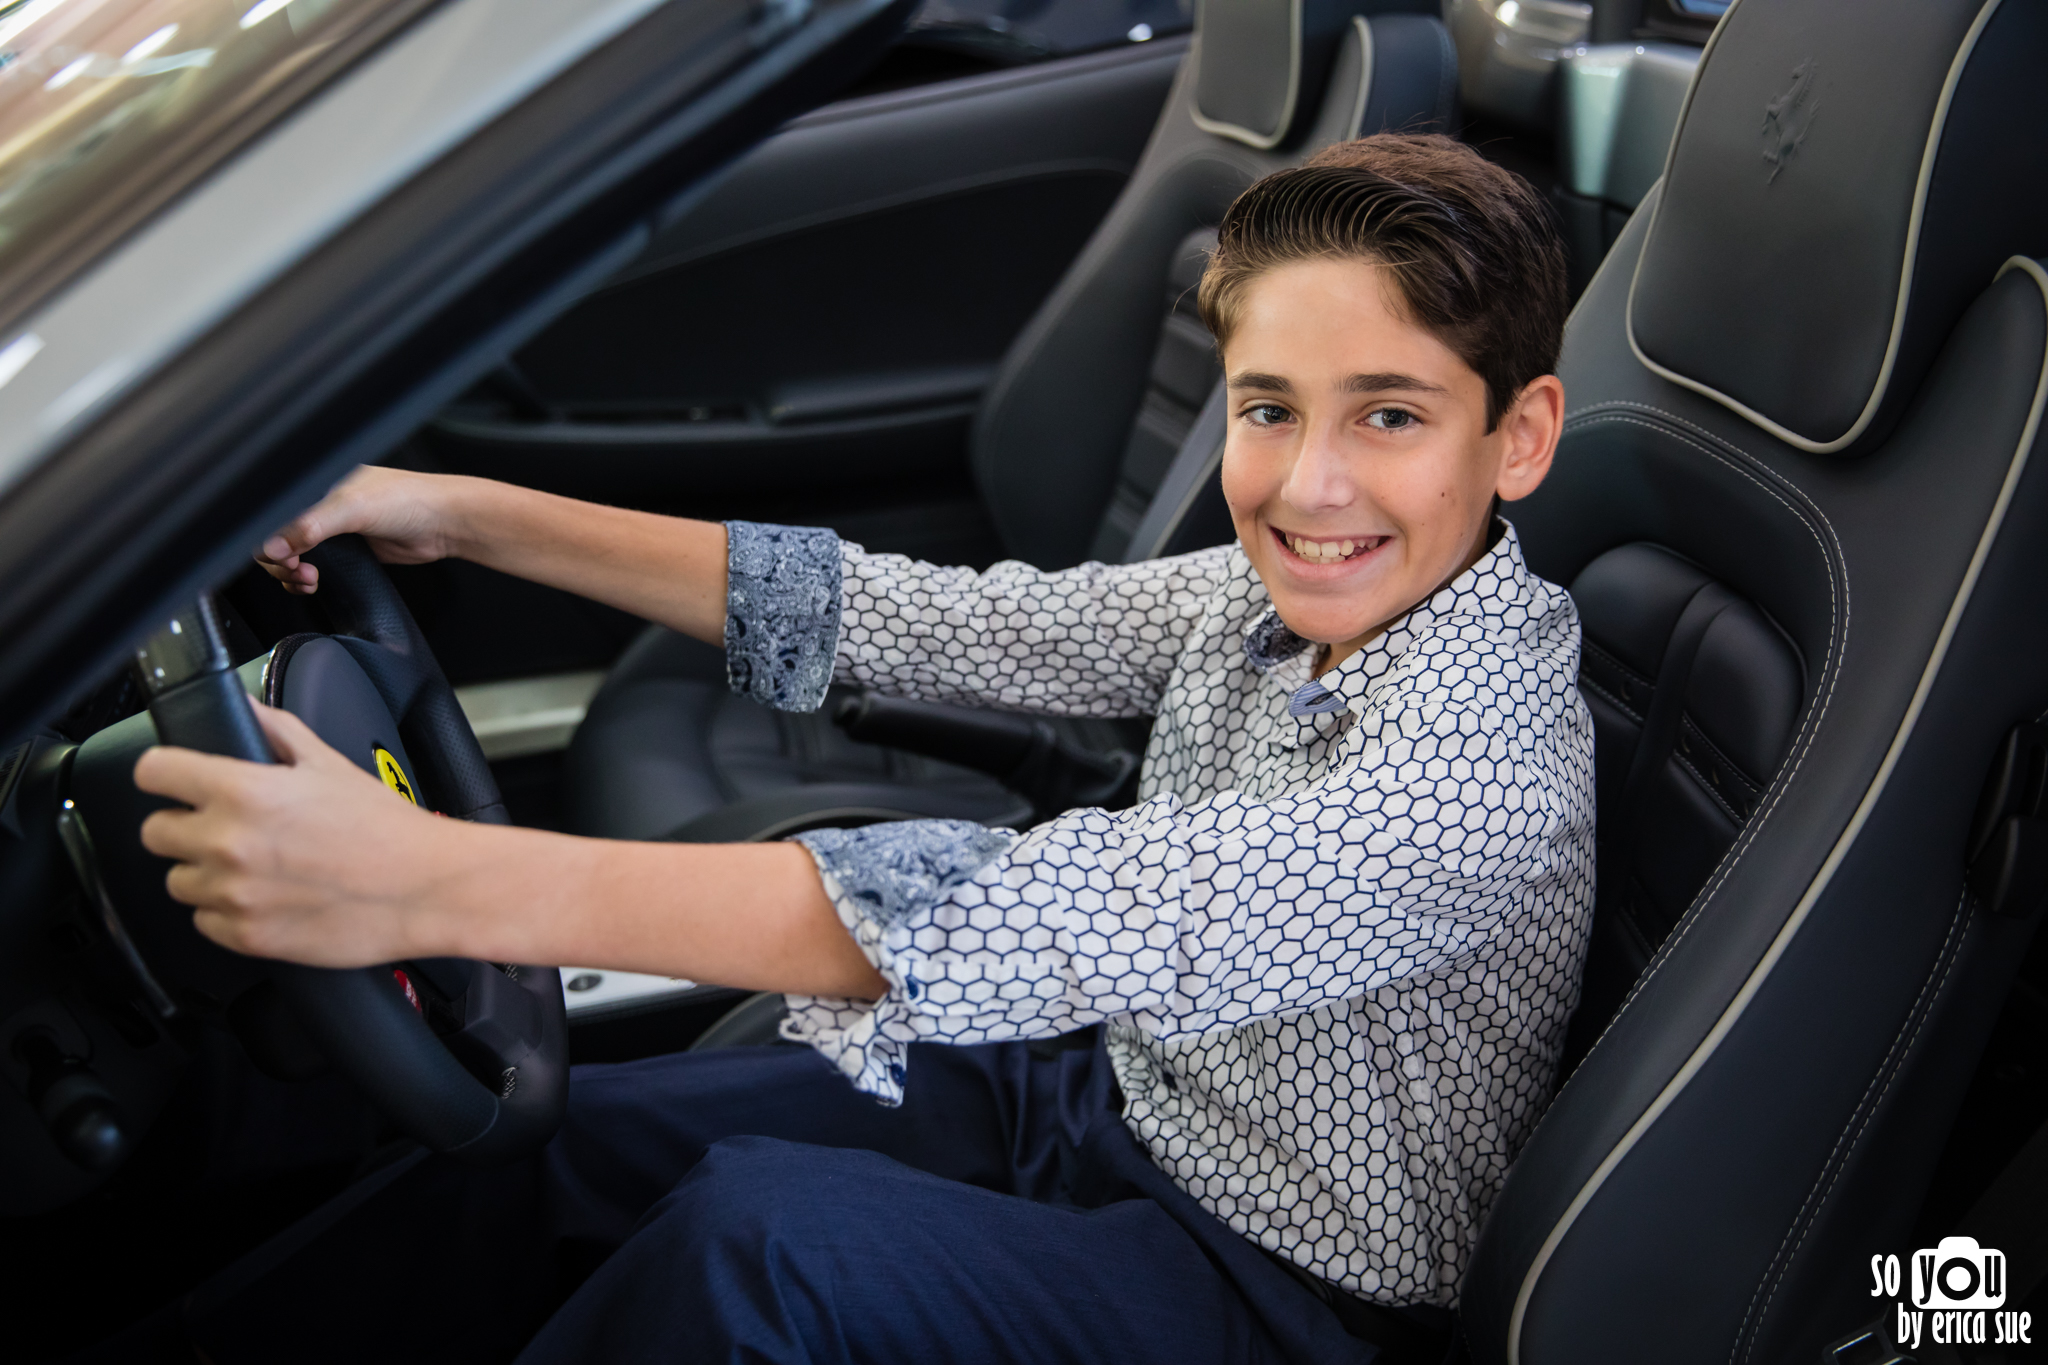 so-you-by-erica-sue-mitzvah-photographer-collection-luxury-car-ft-lauderdale-5073.jpg